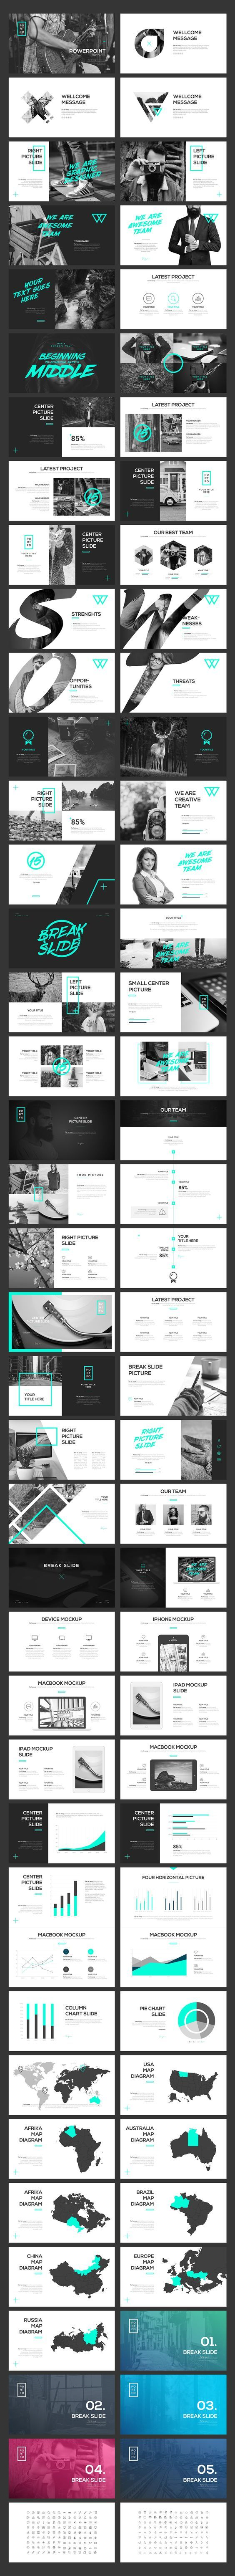 PORTFO PowerPoint Template by Angkalimabelas on @creativemarket: